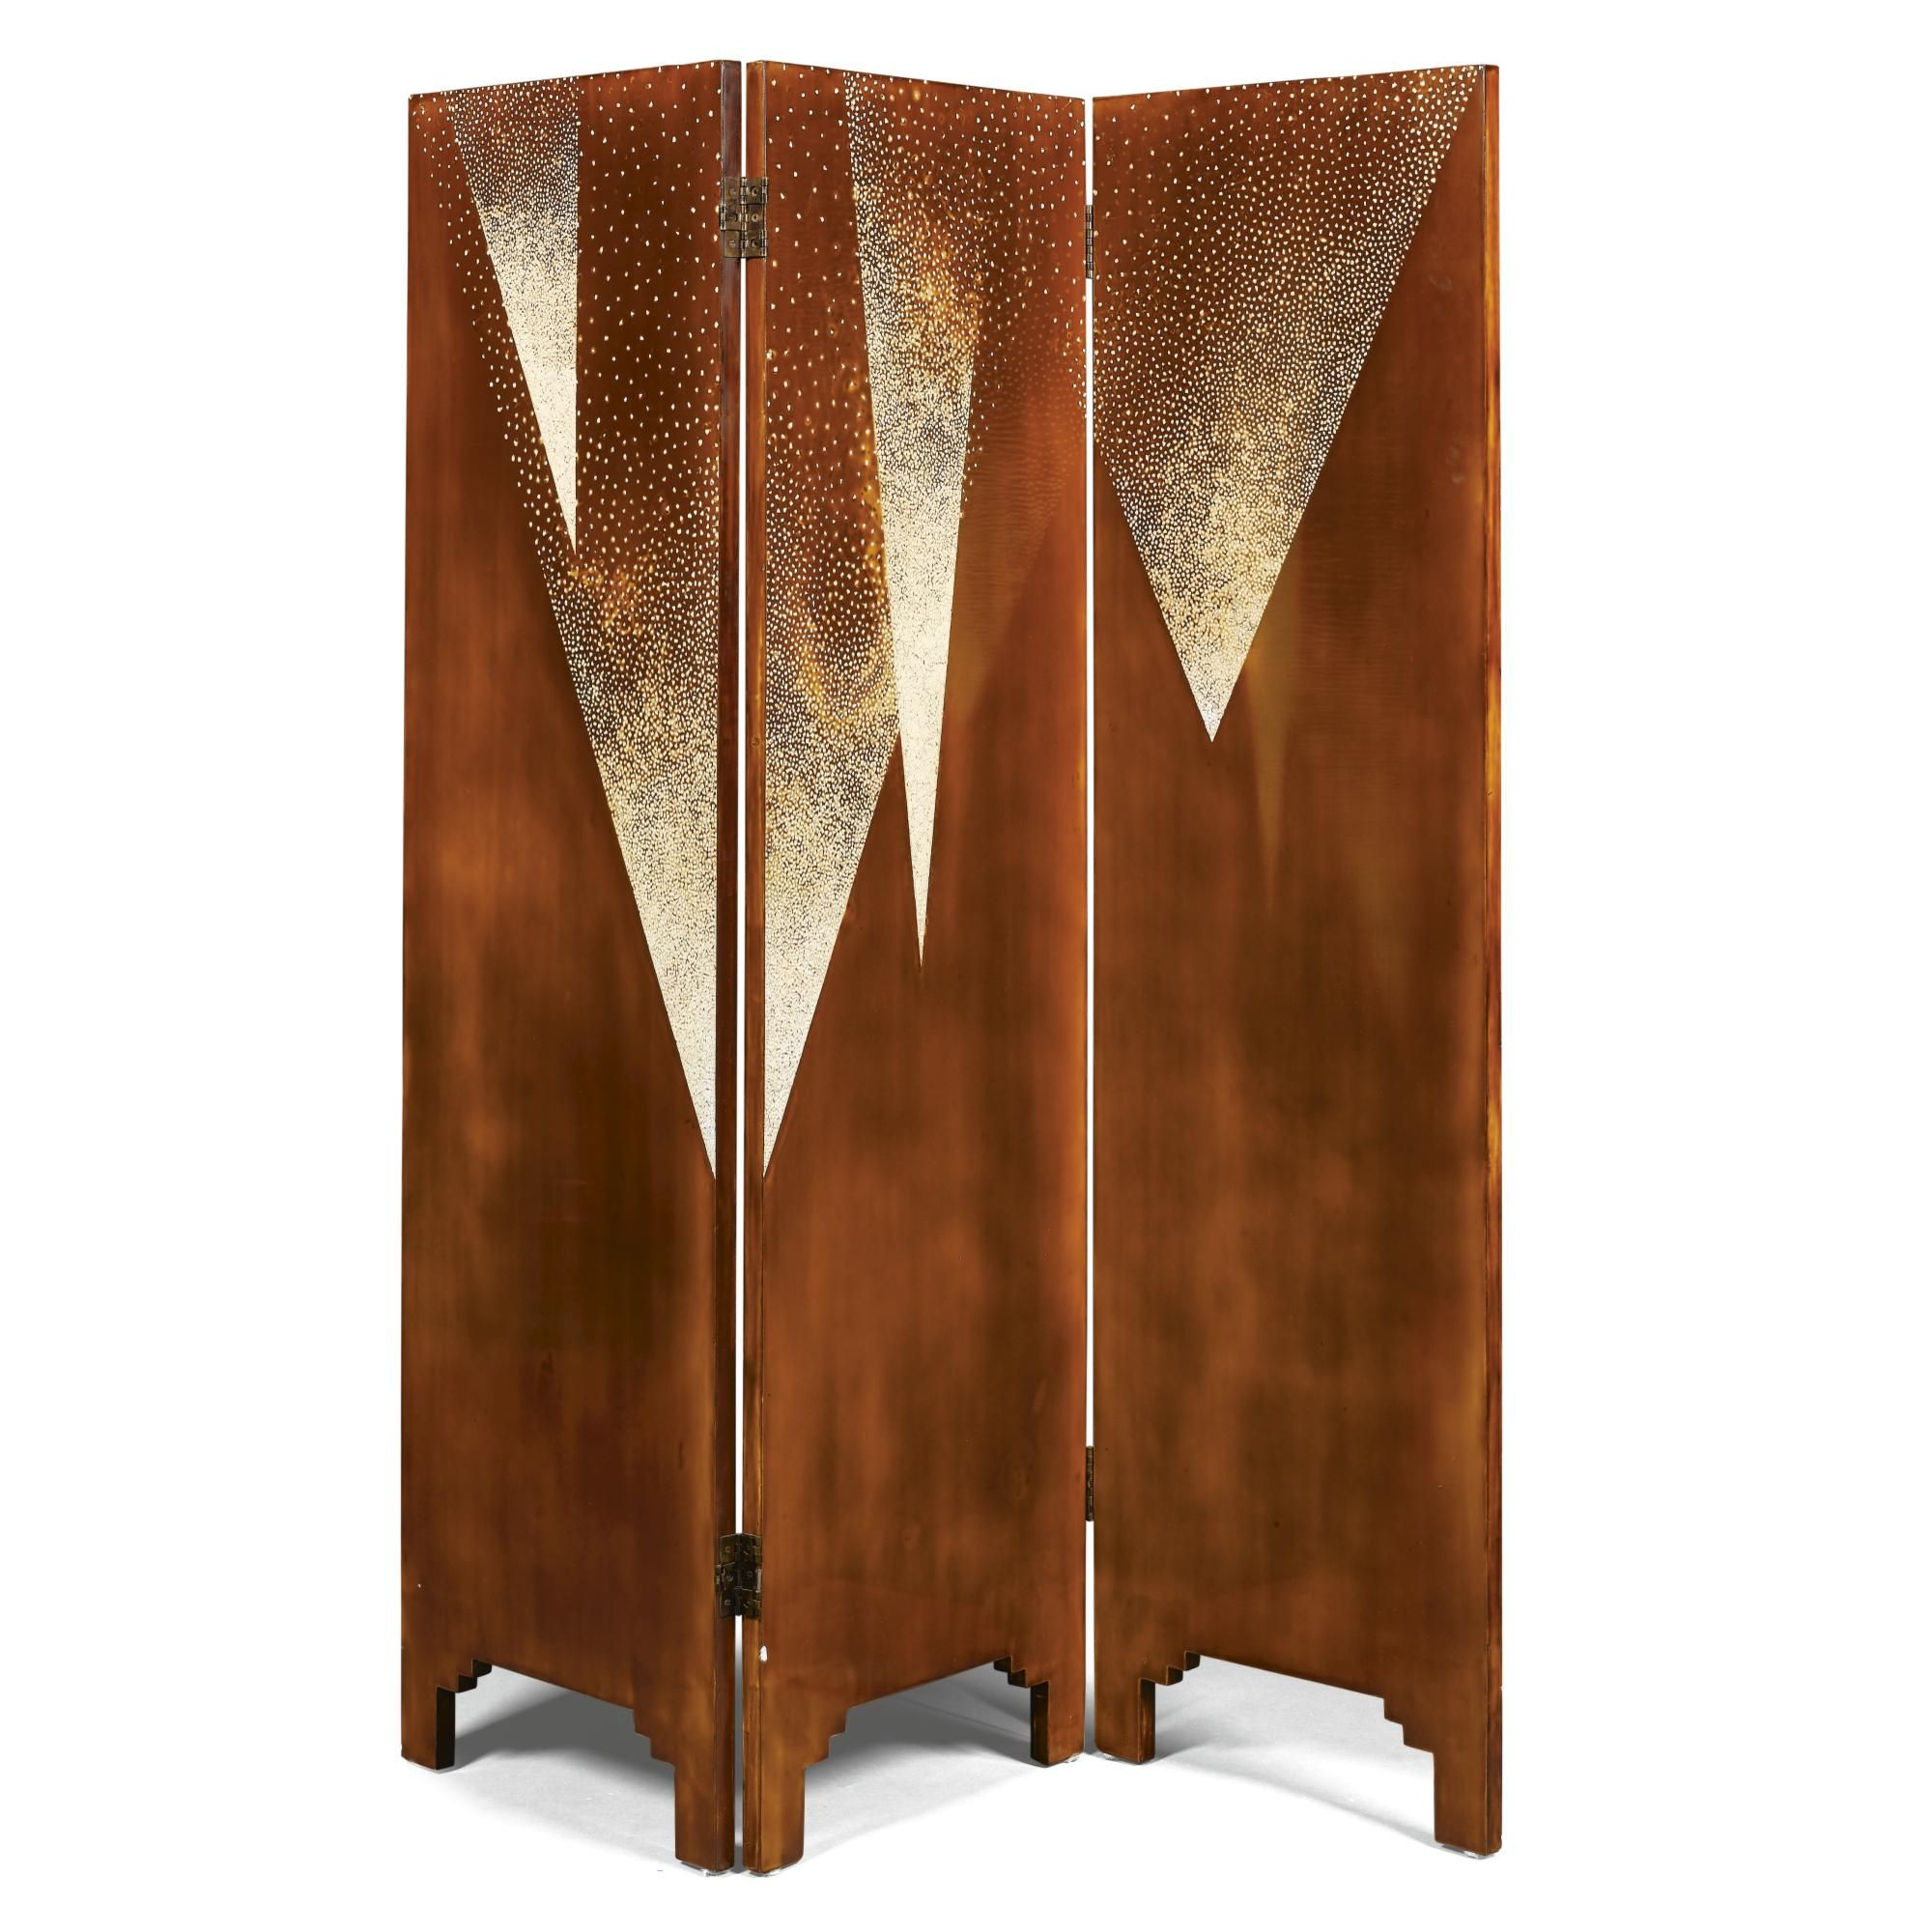 French School A Three Fold Screen Lacquered Wood Eggshell Each